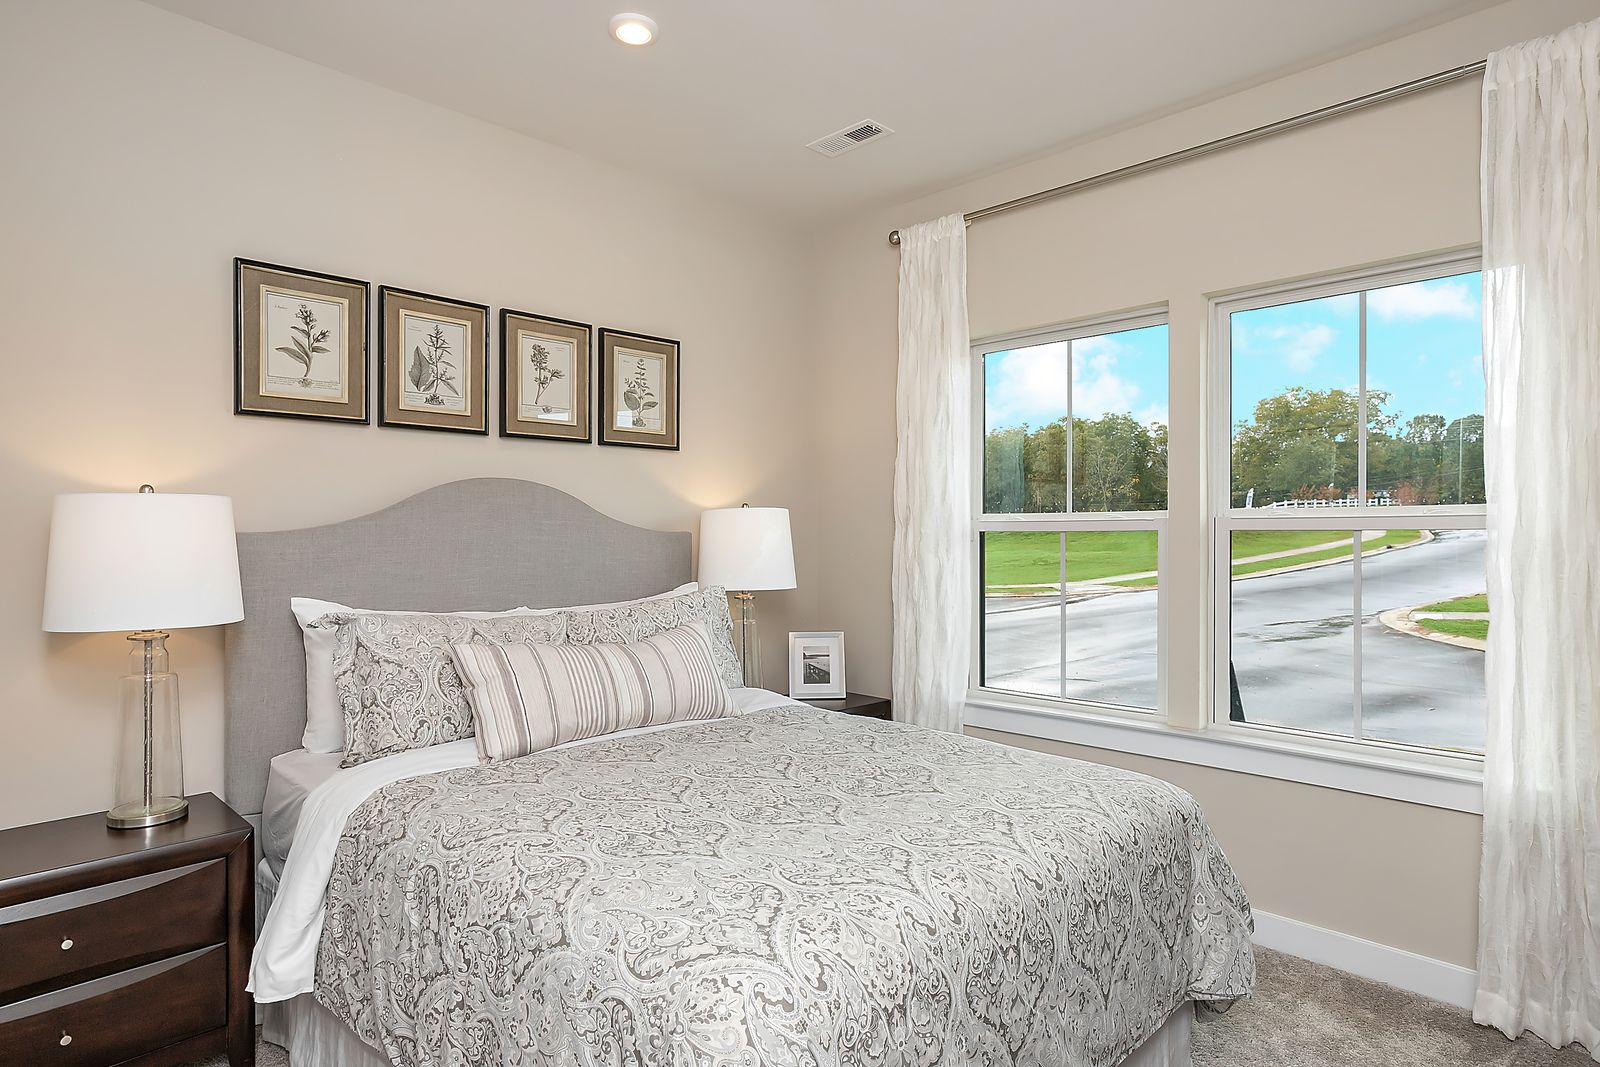 Bedroom featured in the Bramante Ranch with Full Basement By Ryan Homes in Chicago, IL